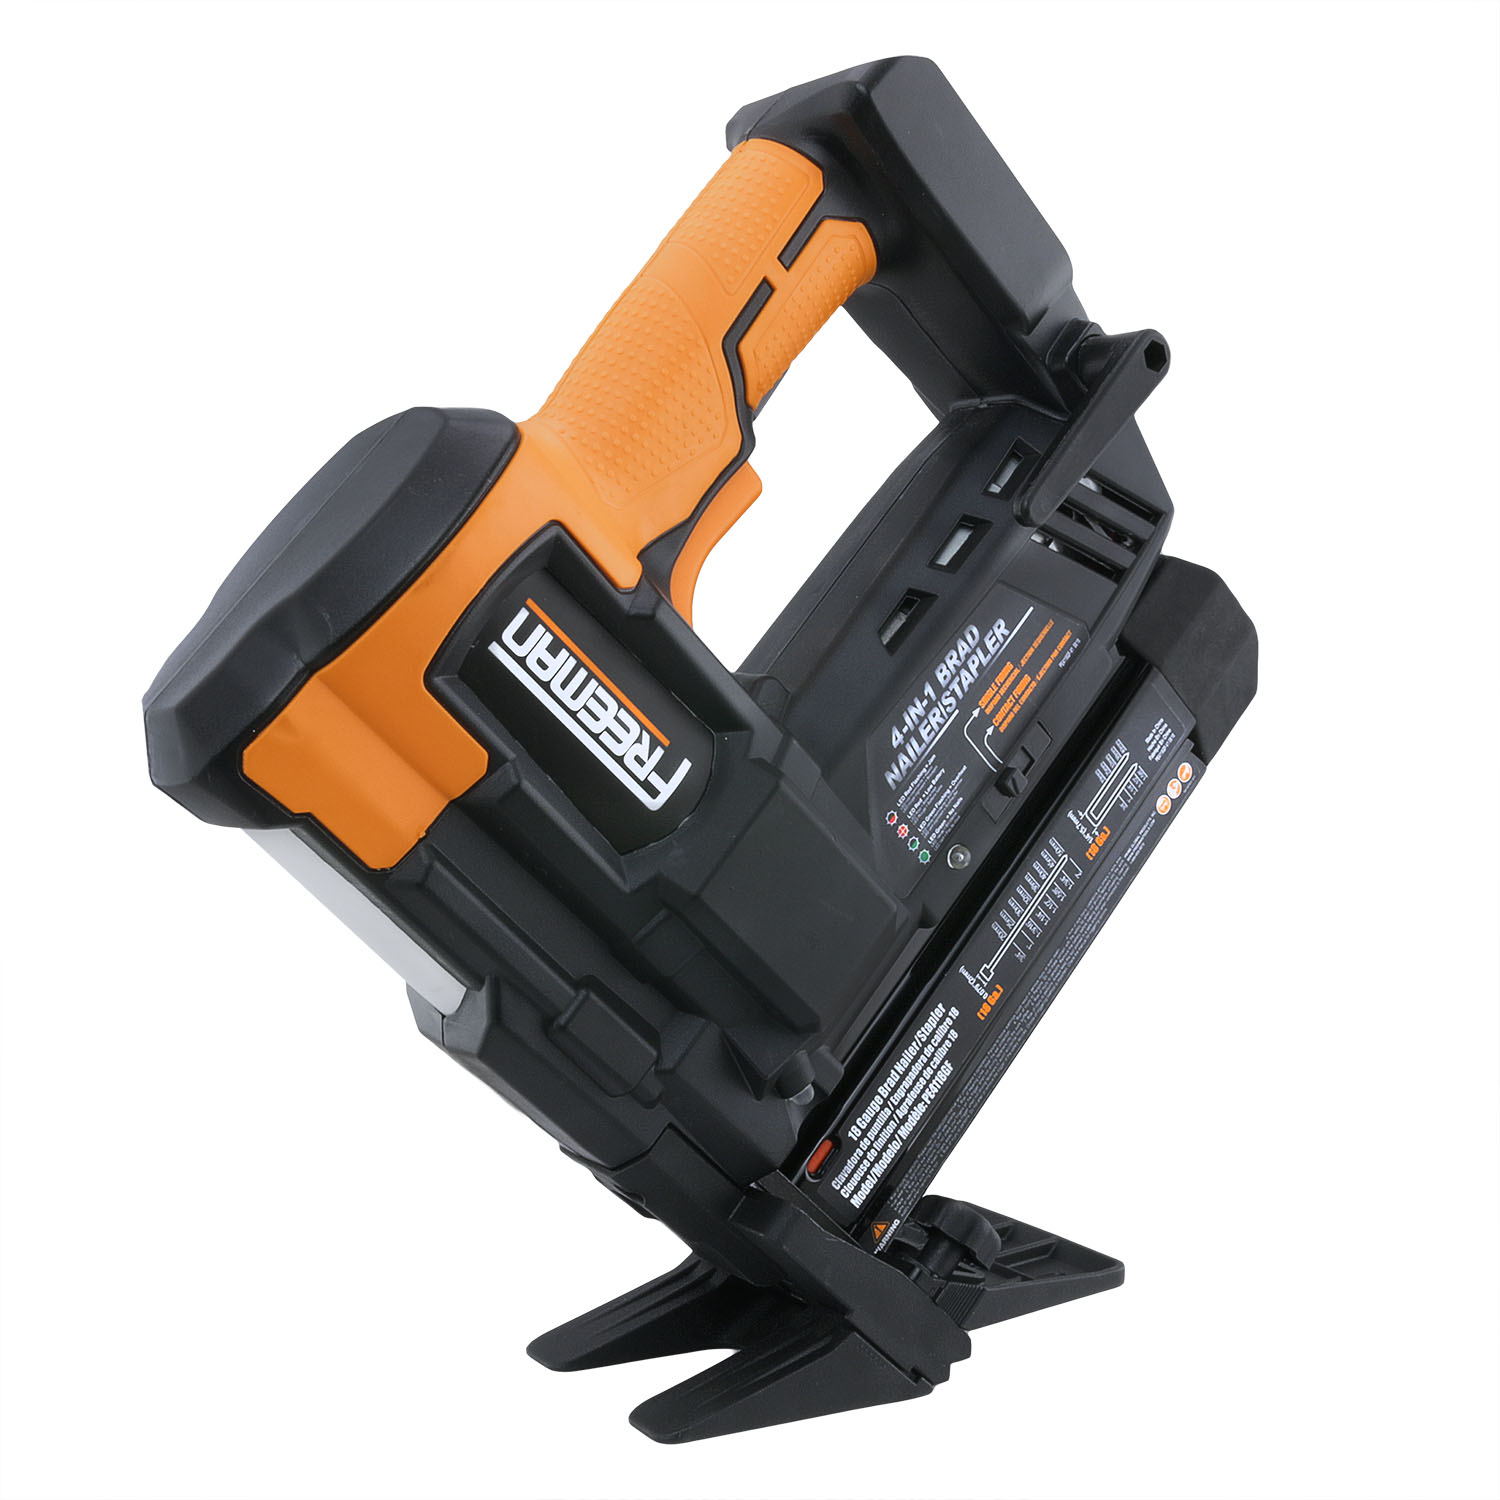 Freeman PE4118GF Cordless 20V 4-in-1 18 GA Flooring Nailer & Stapler